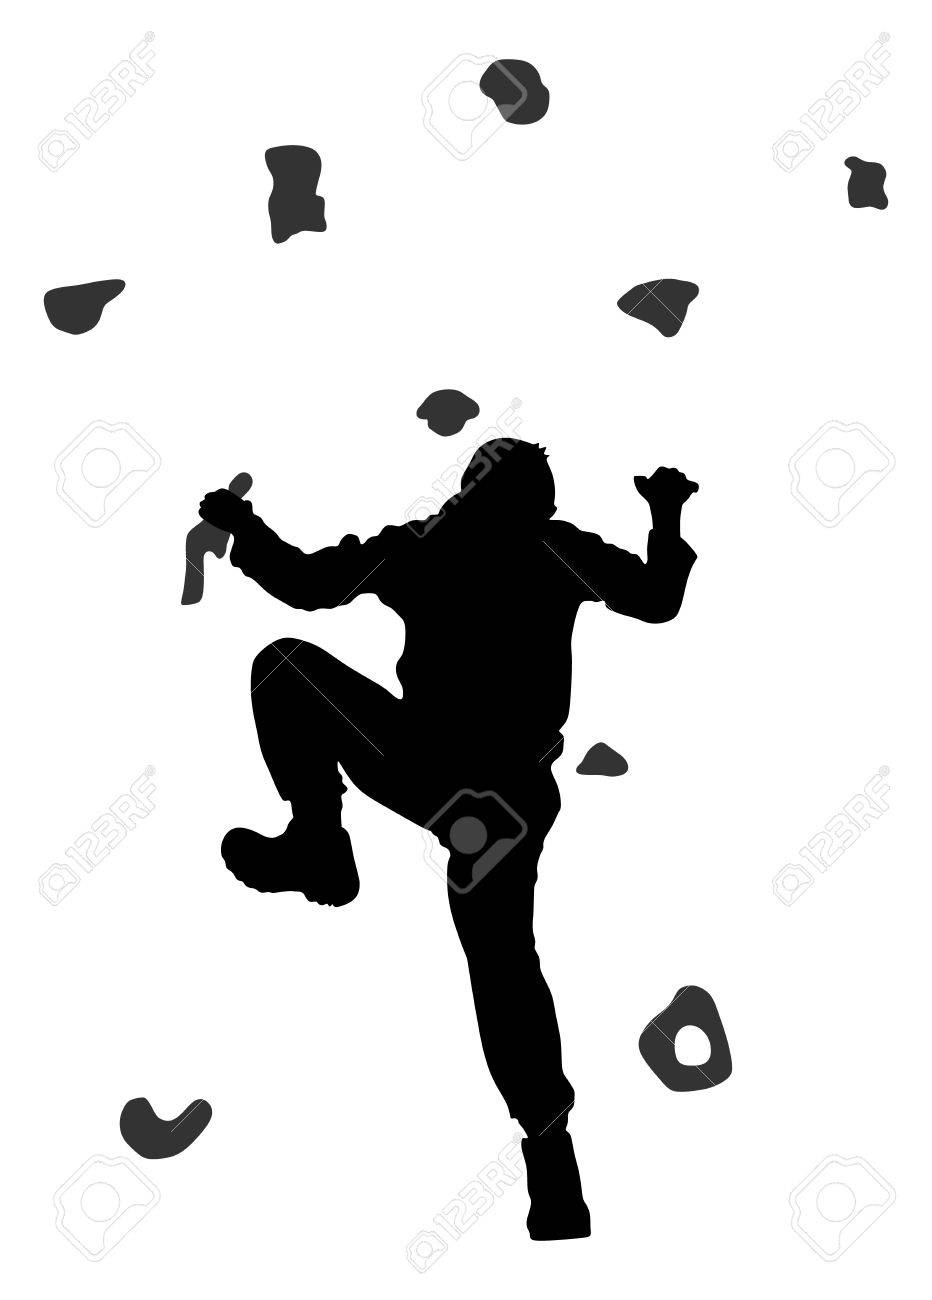 Image result for bouldering silhouette